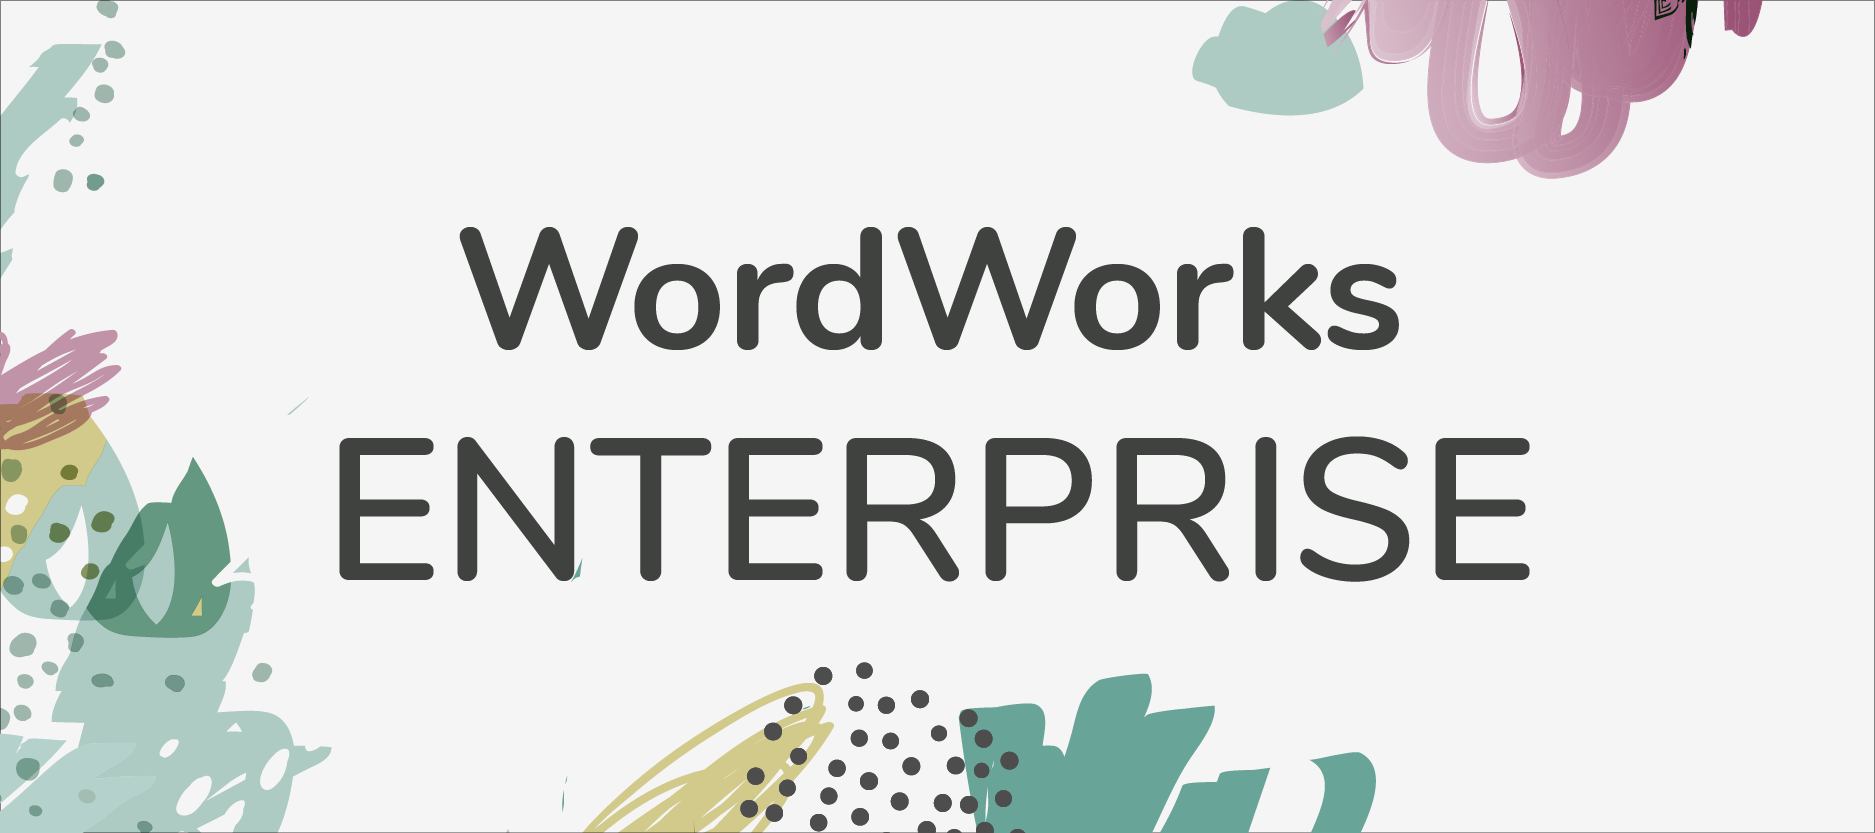 - Everything in WordWorks – Expert– PLUS –Team bios (up to 8)Product/service descriptions (up to 5)Social proof (existing testimonials, reviews, or case studies)Frequently asked questions and answers2 rounds of revisionsTurn-around: 3 weeks